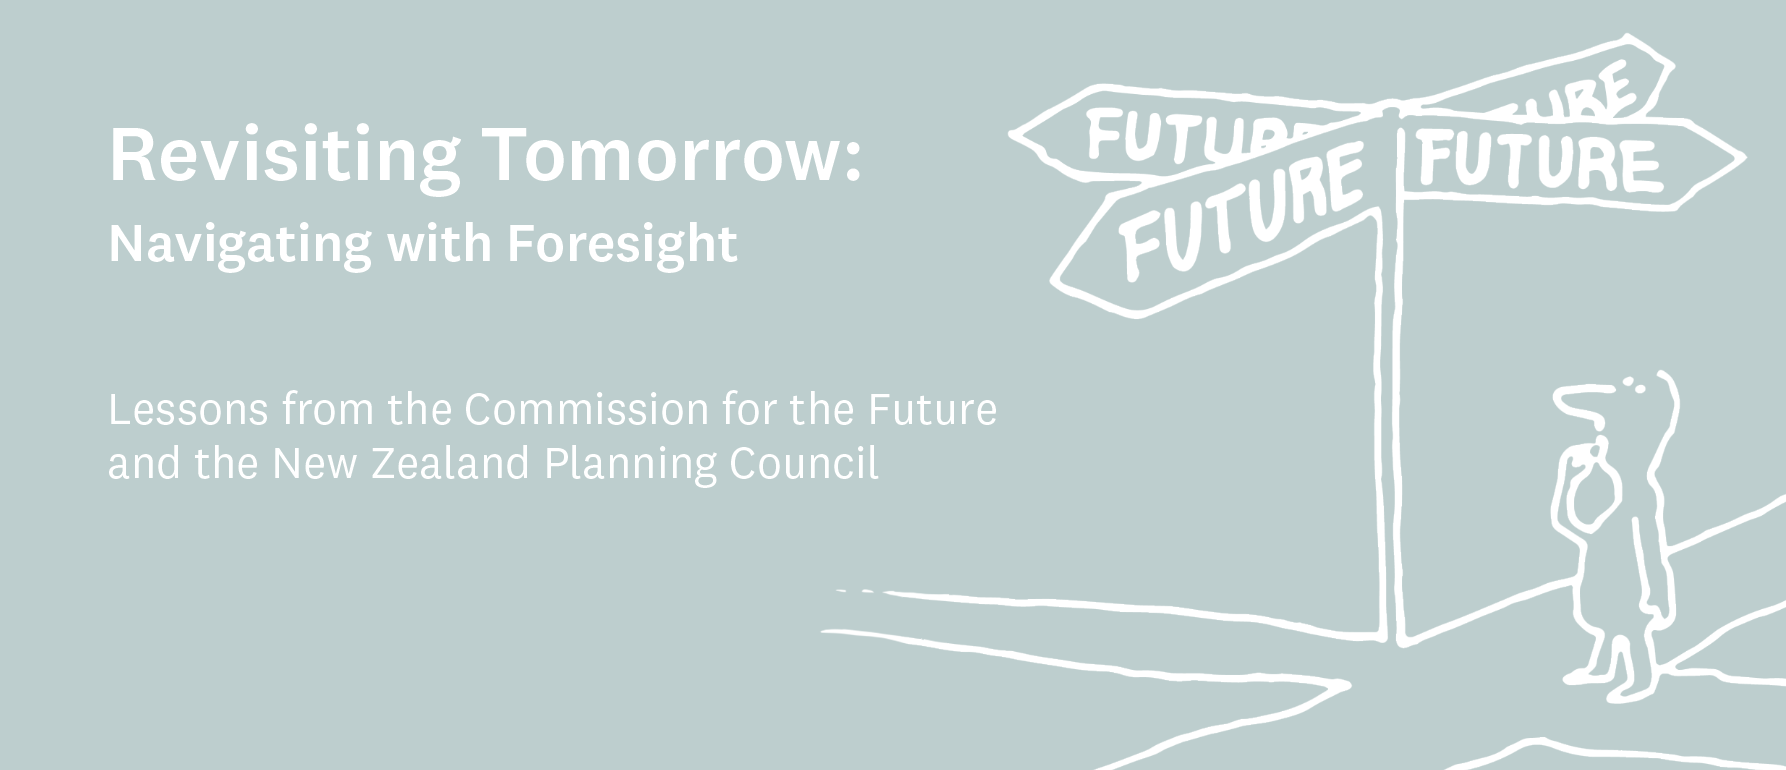 Revisiting Tomorrow: Navigating with Foresight – Lessons from the Commission for the Future and the New Zealand Planning Council logo